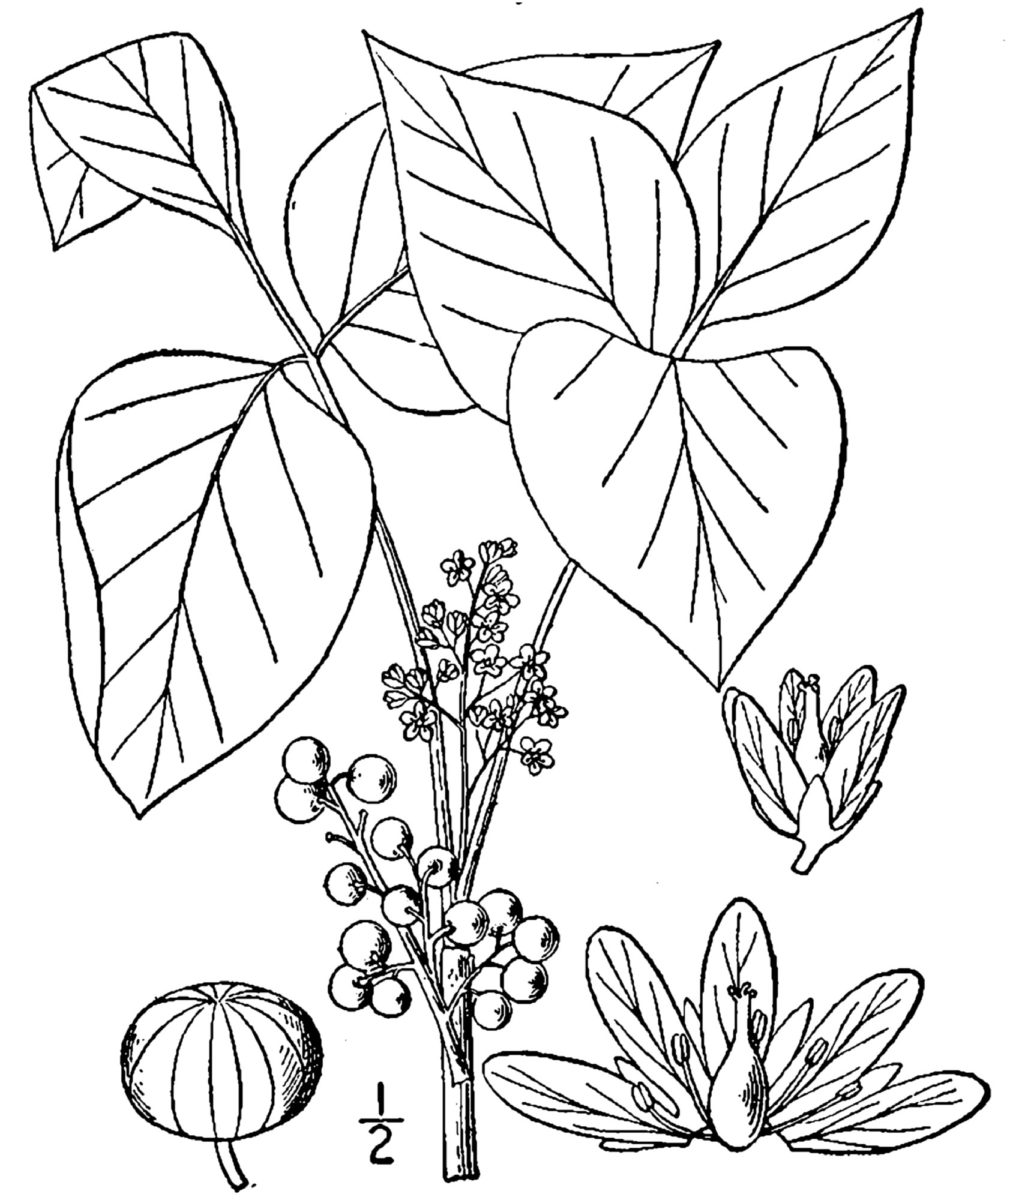 Plant Leaves And Berries Coloring Page